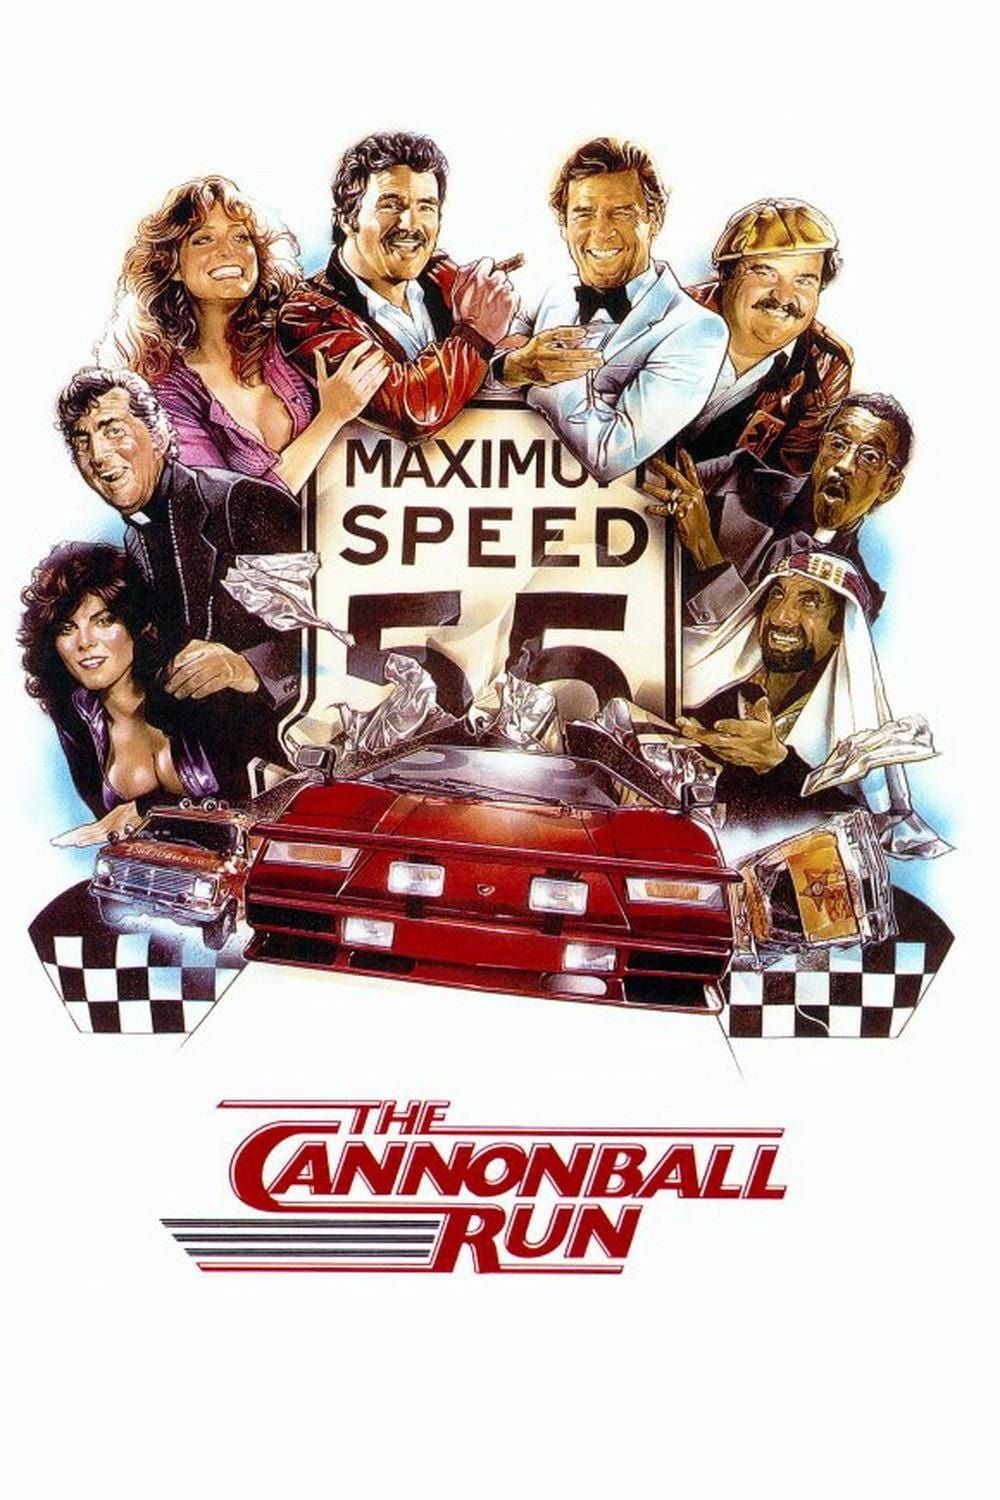 1981 The Cannonball Run Full Movies Online Free Full Movies Download Movies